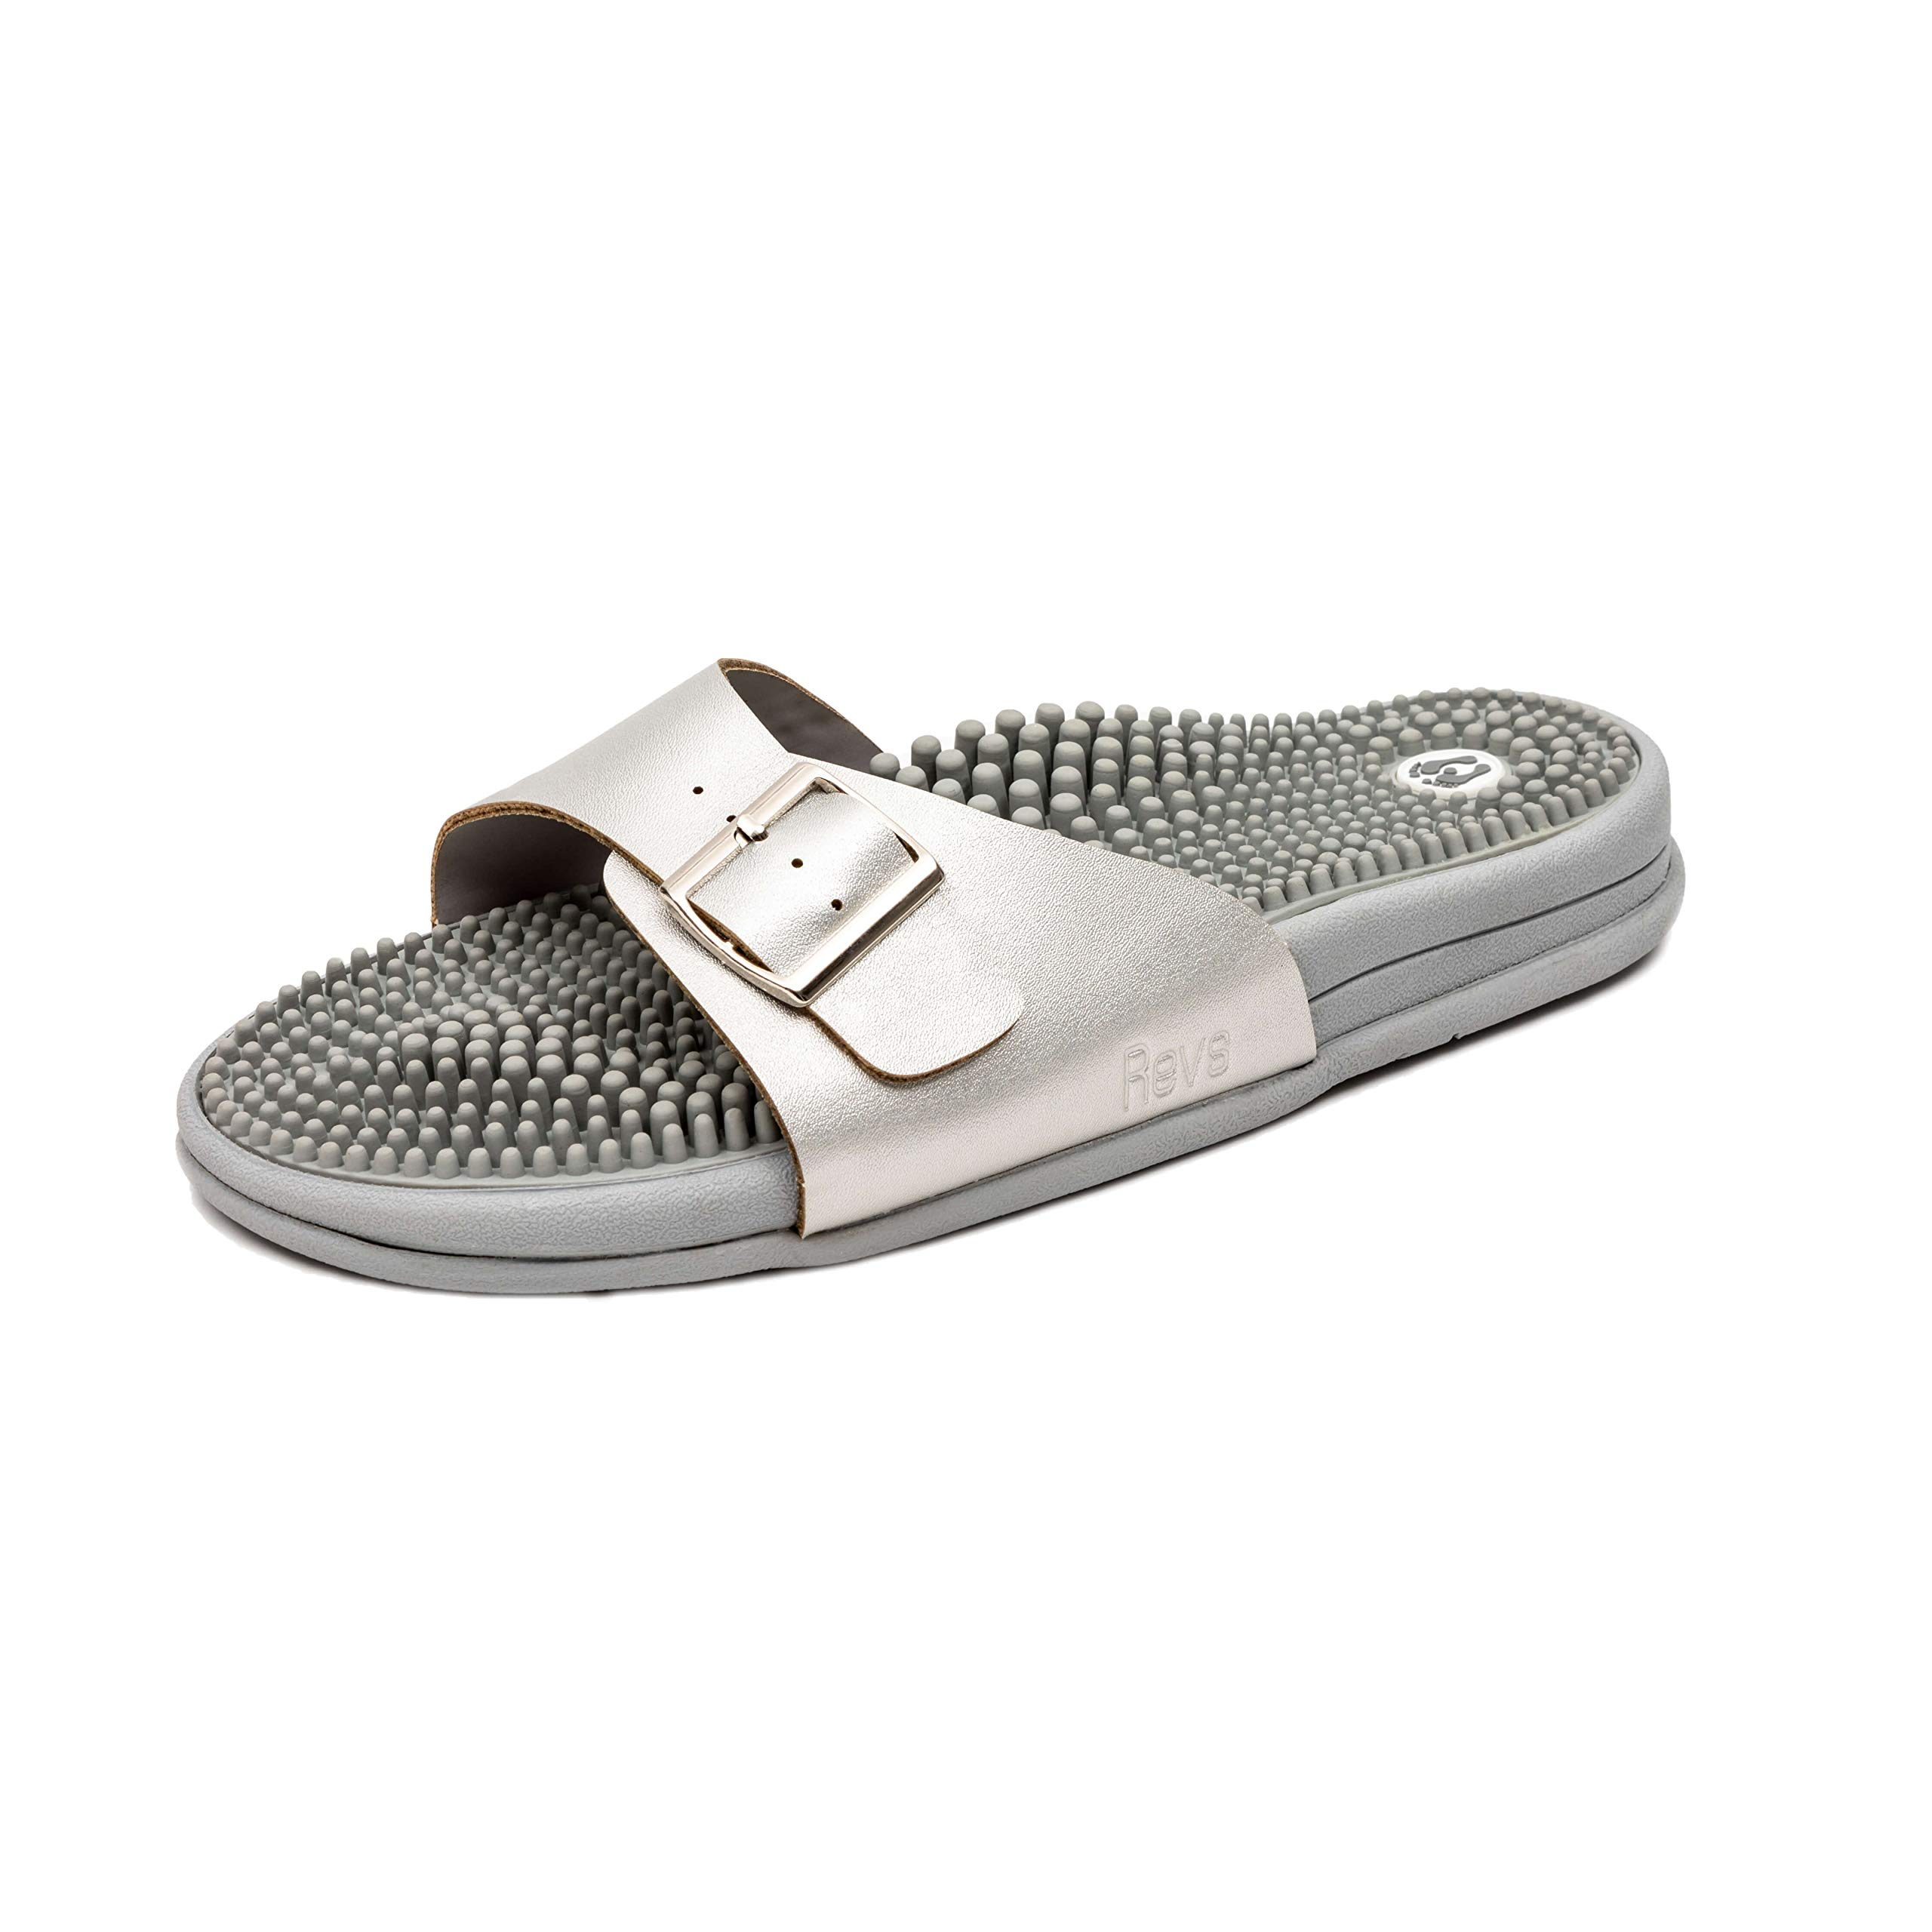 Revs Premium Pain Relief Sandals in Metallic Silver. Reflexology Massage & Acupressure, Shock Absorbing, Cushion Sole with Arch Support by Revs